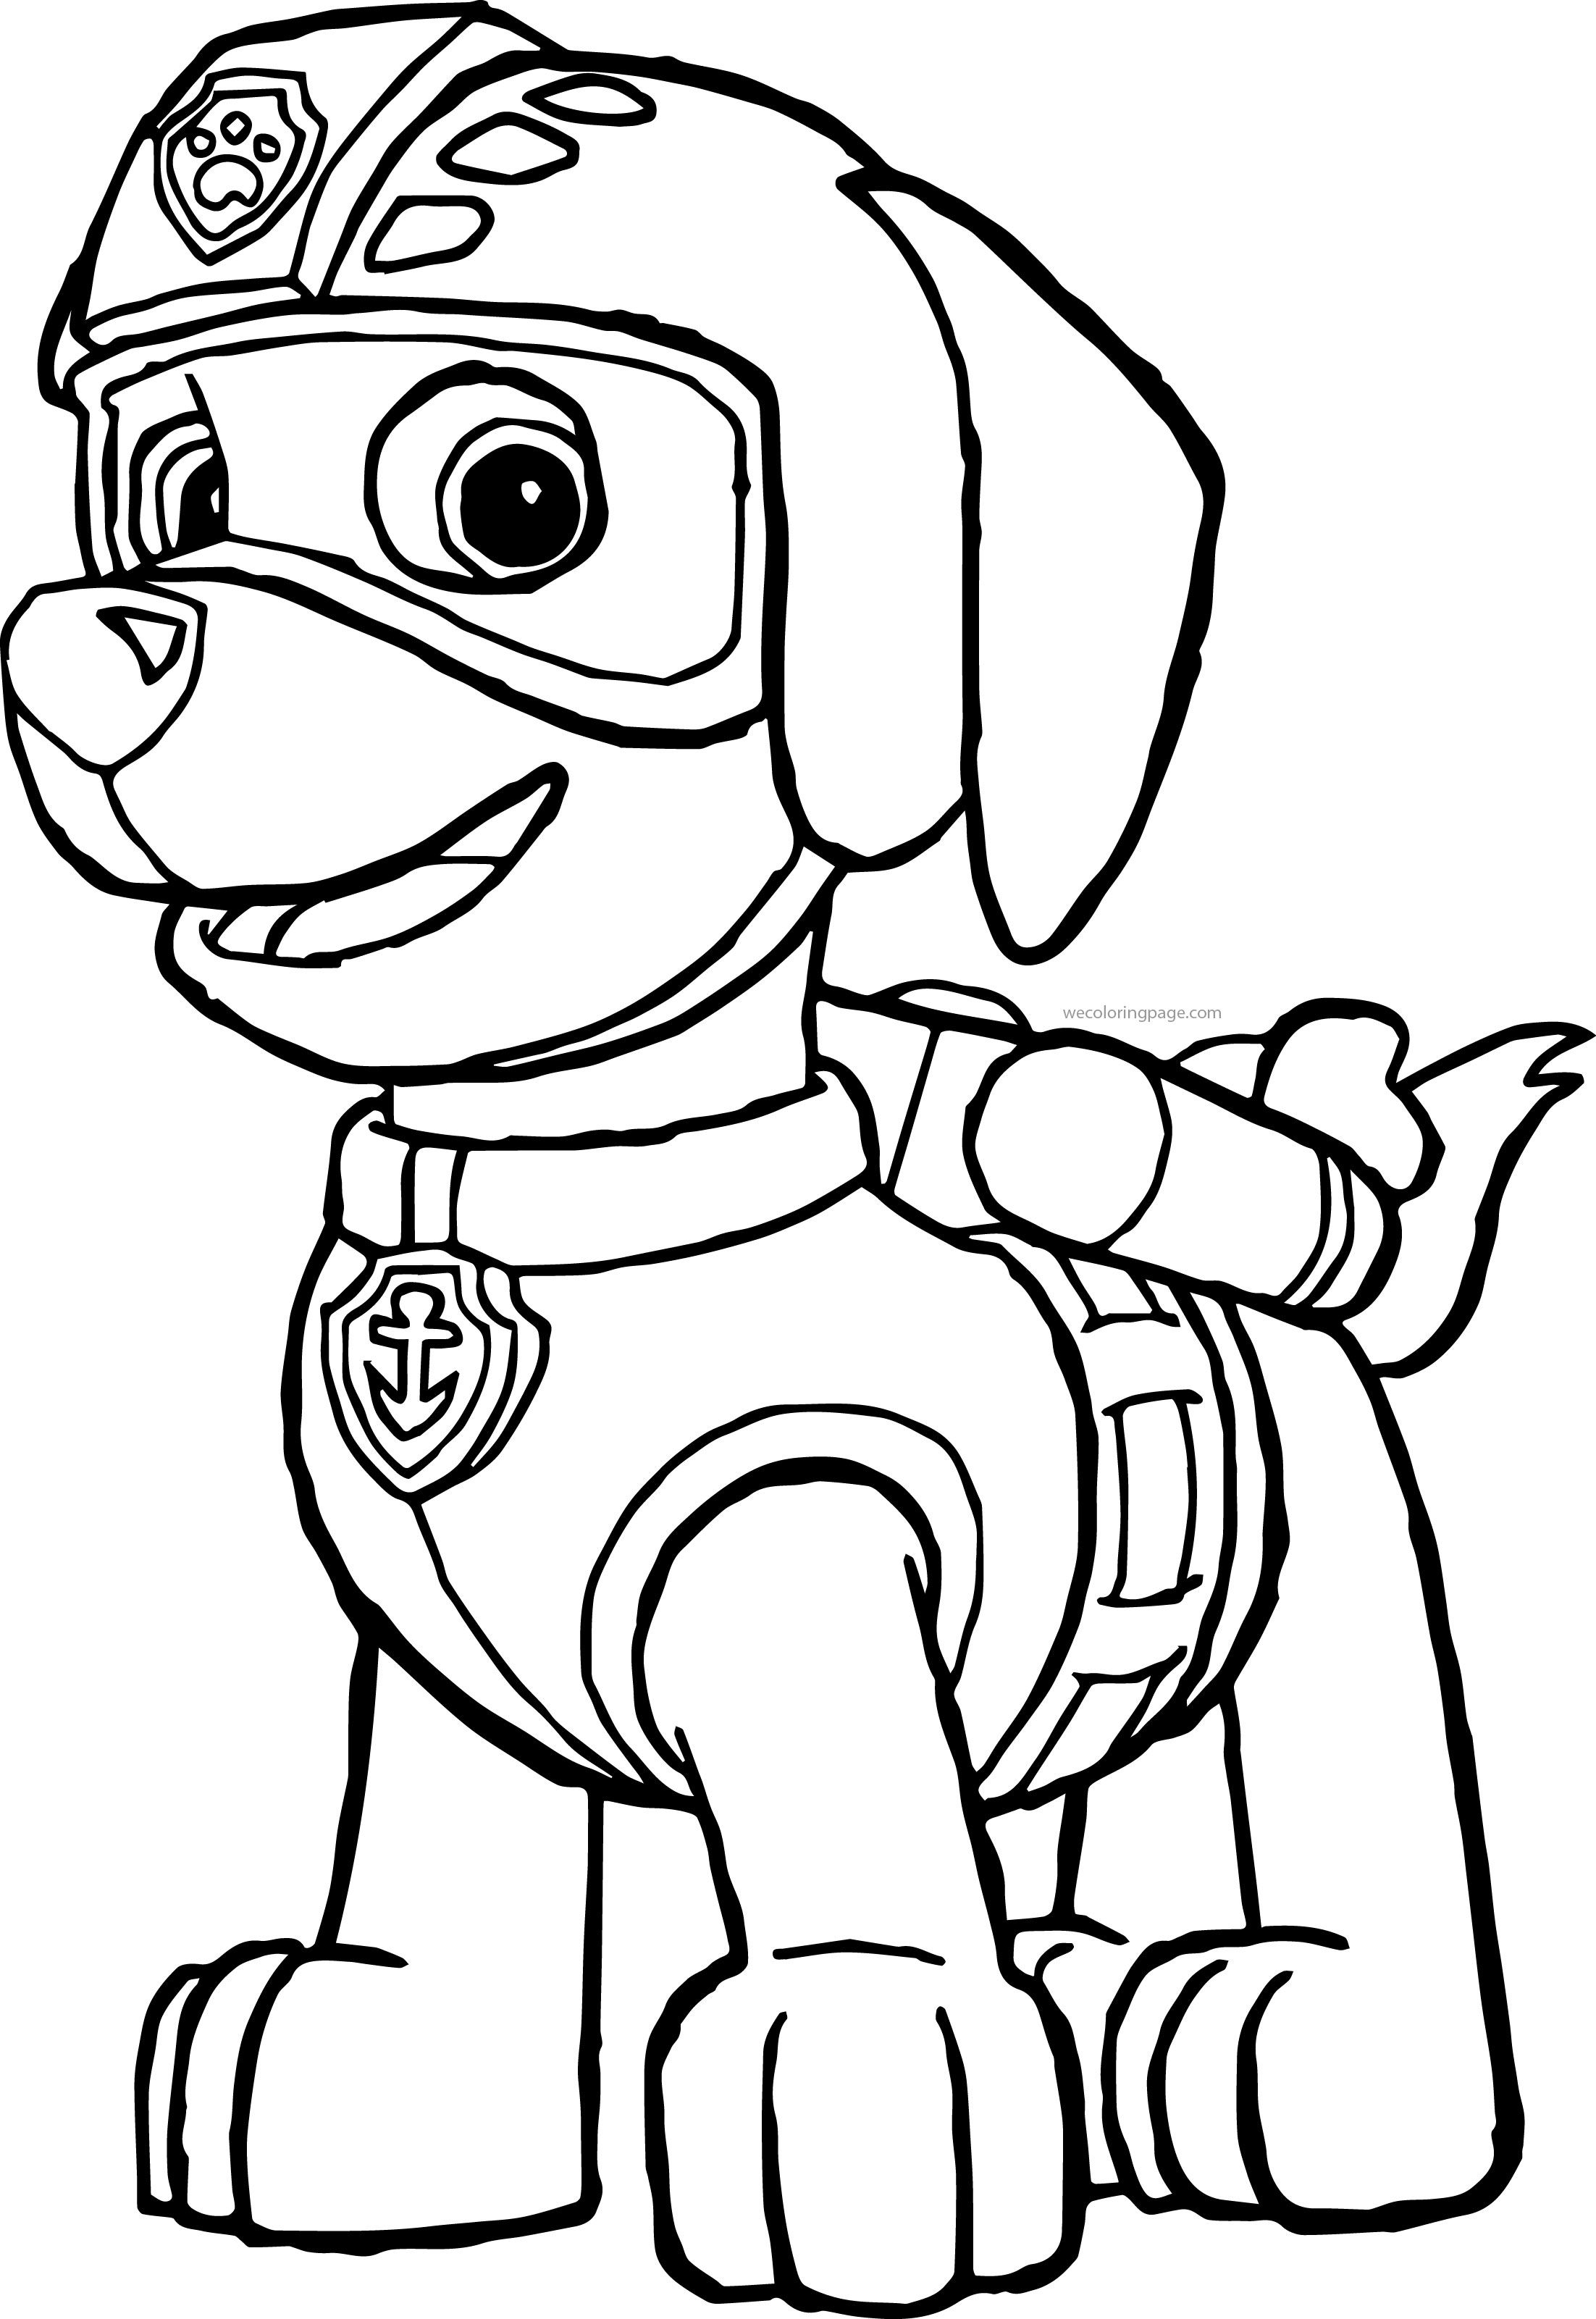 Paw Patrol Coloring Pages Wecoloringpage Paw Patrol Coloring Pages Paw Patrol Coloring Zuma Paw Patrol